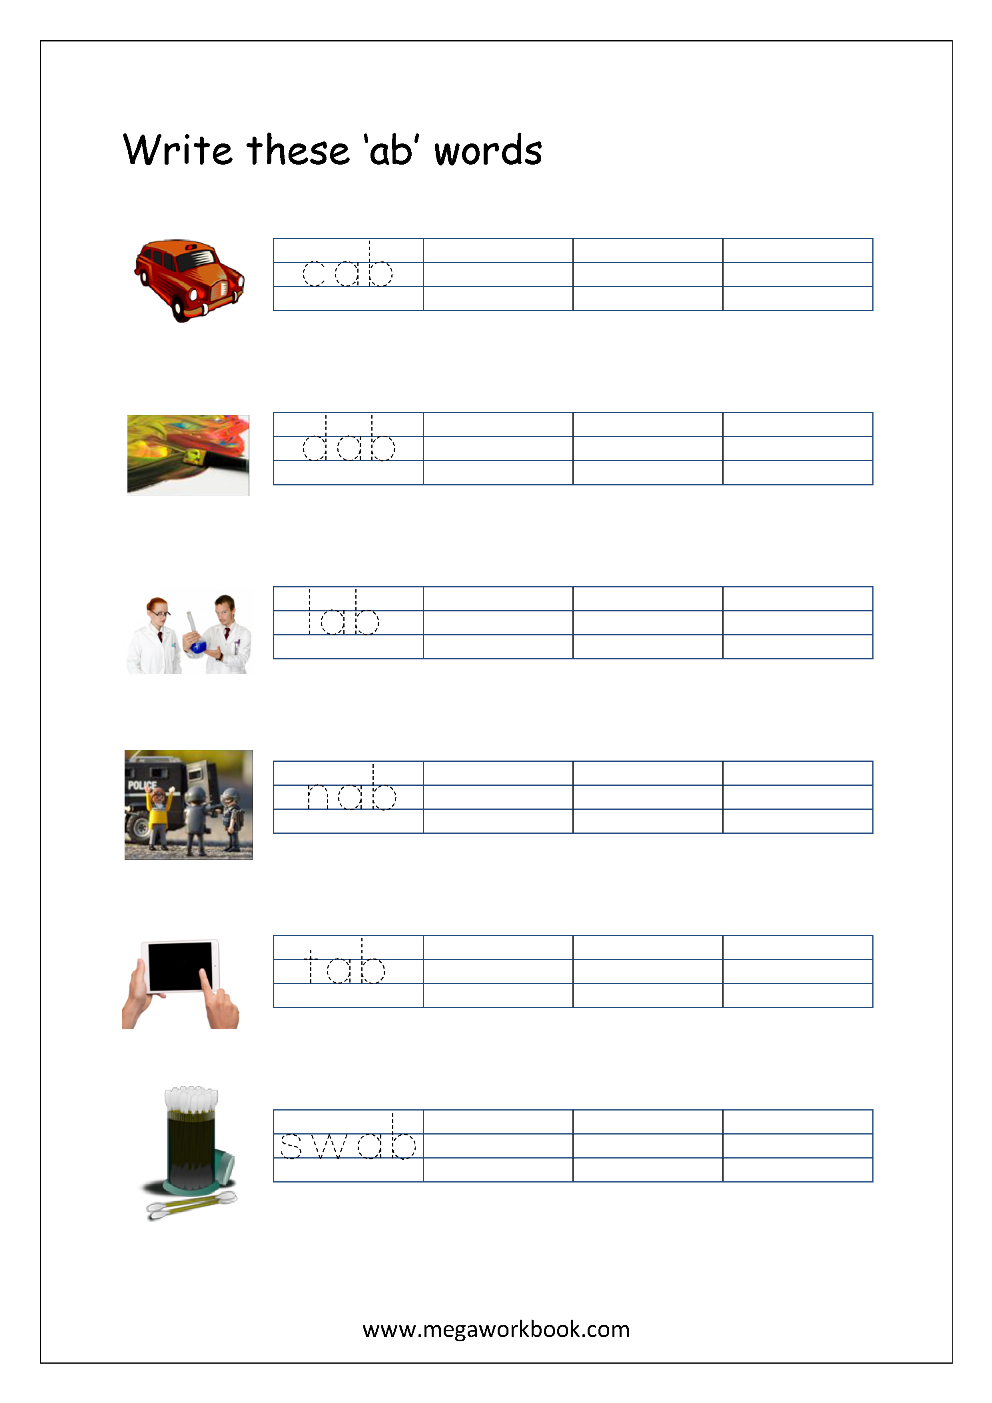 Free Printable Cvc Words Writing Worksheets For Kids - Three